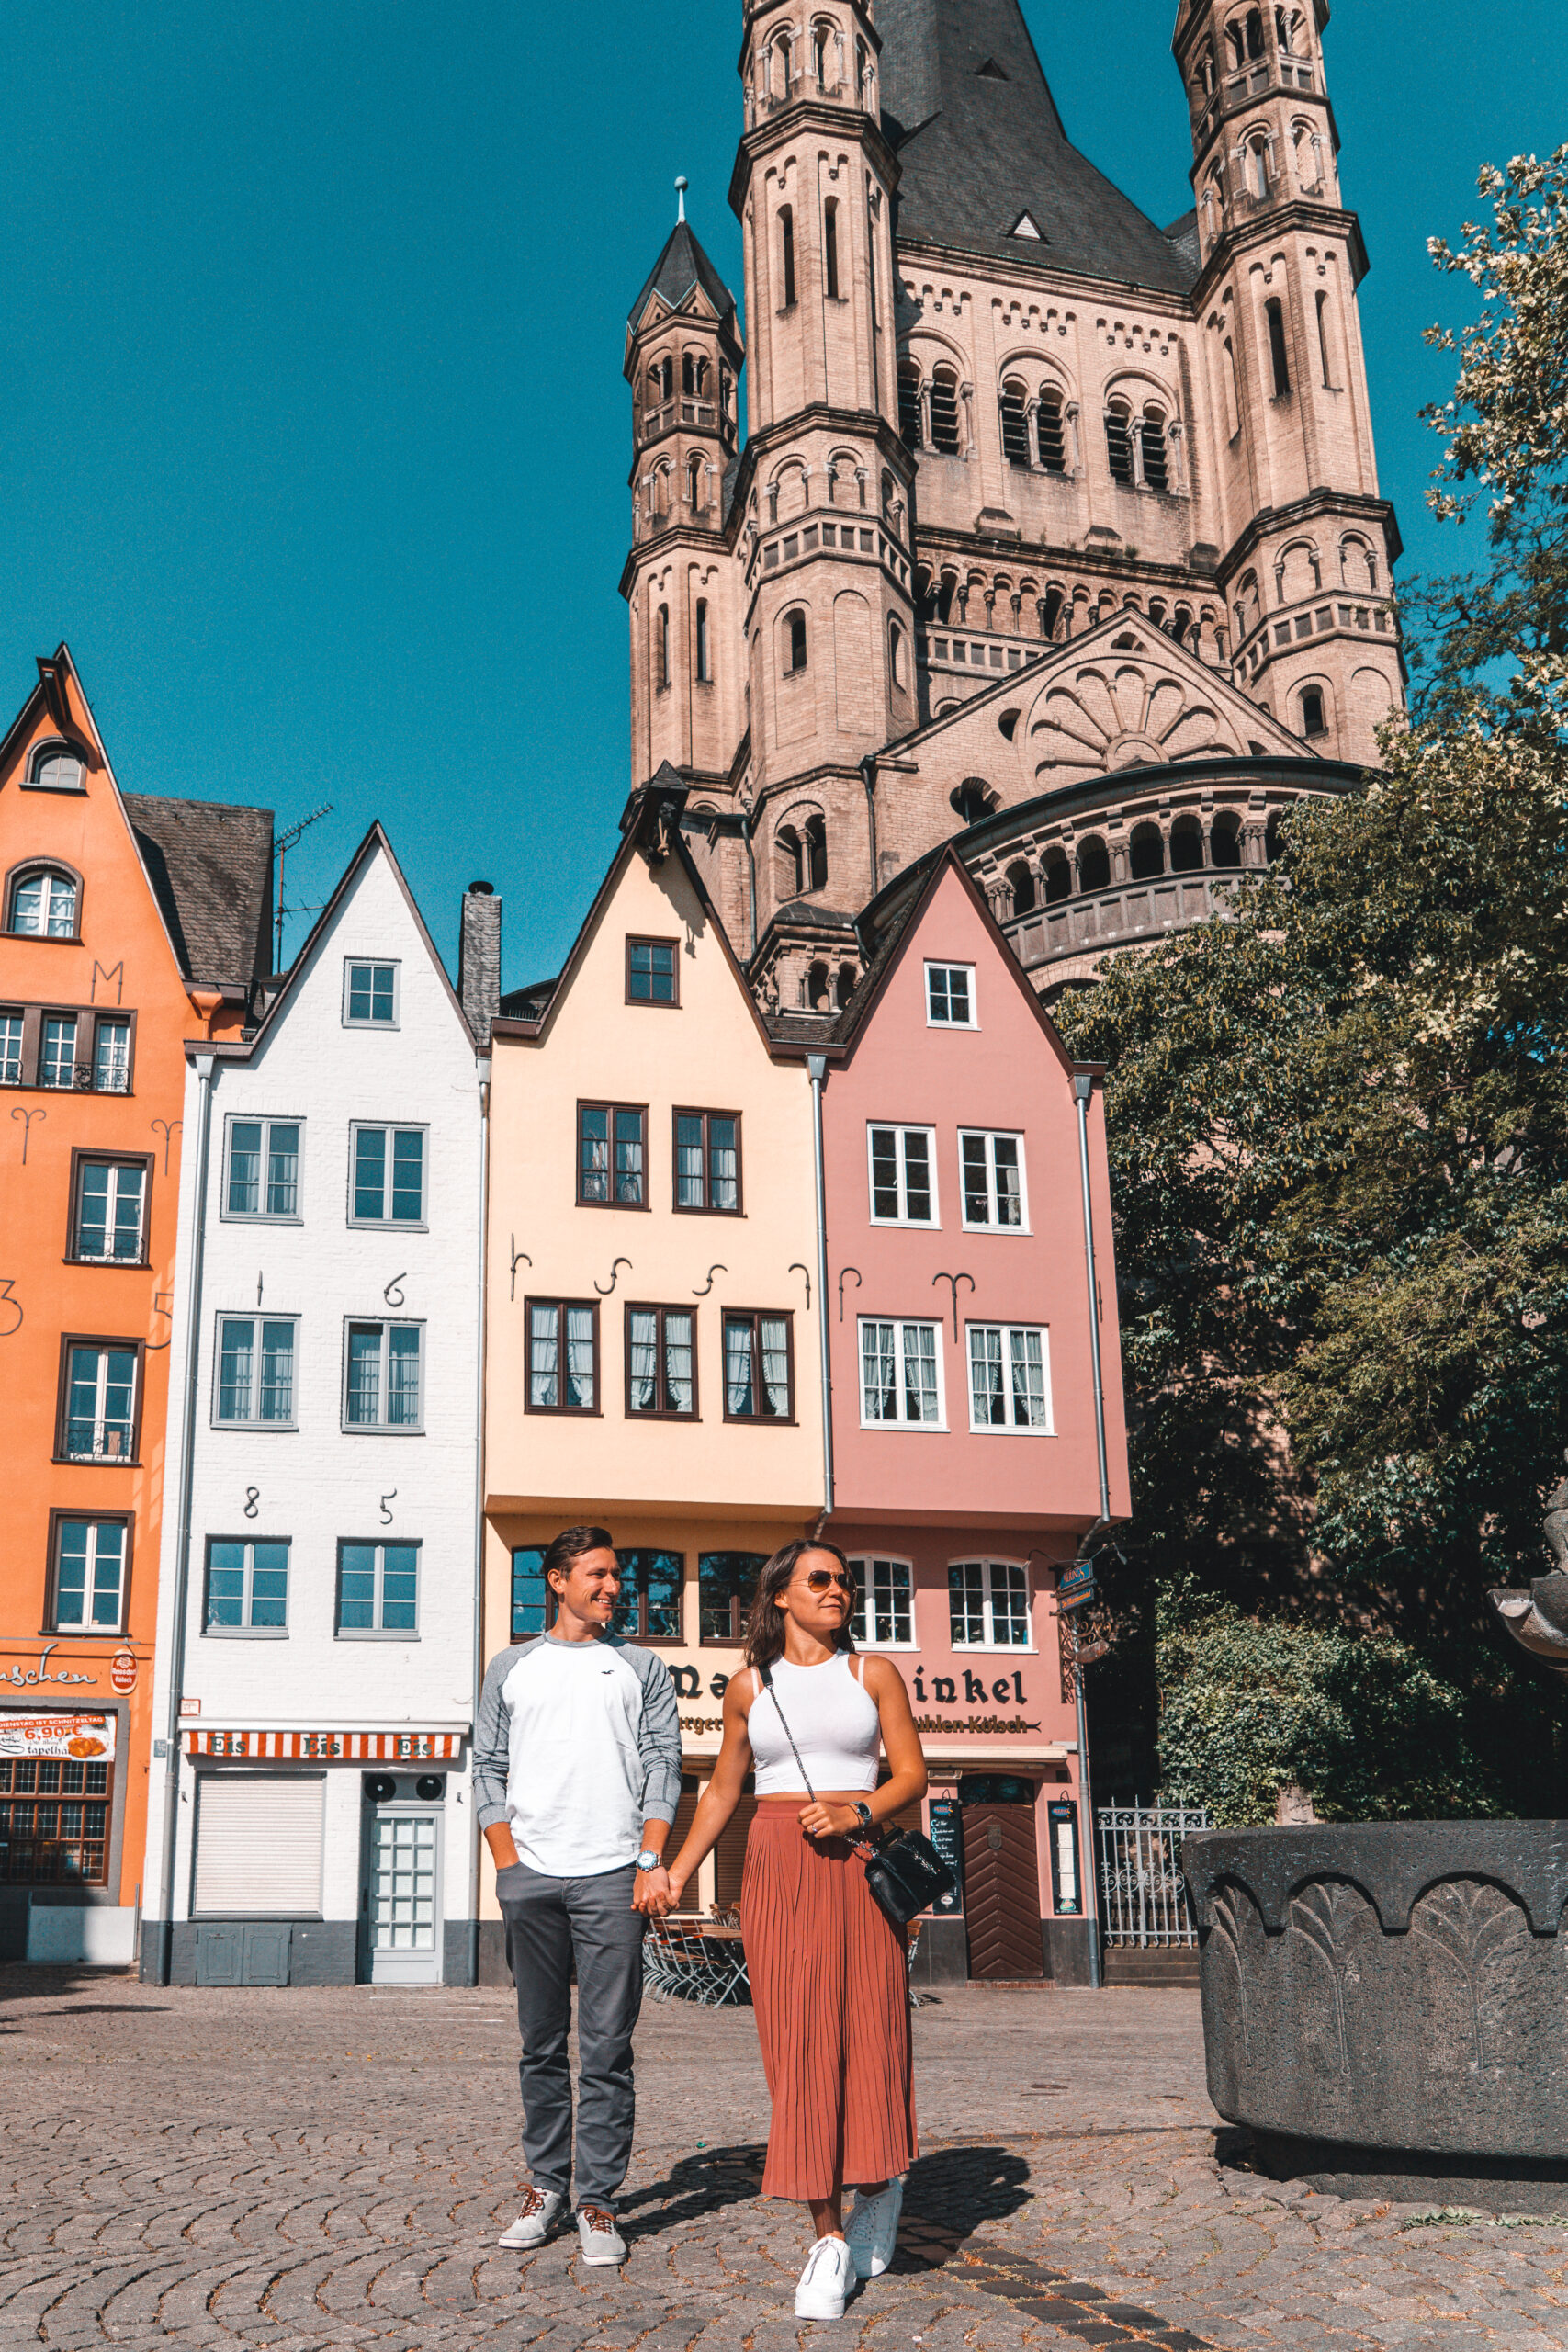 Cologne's Old Town | A Local's Guide to Cologne | Reasons to visit Cologne